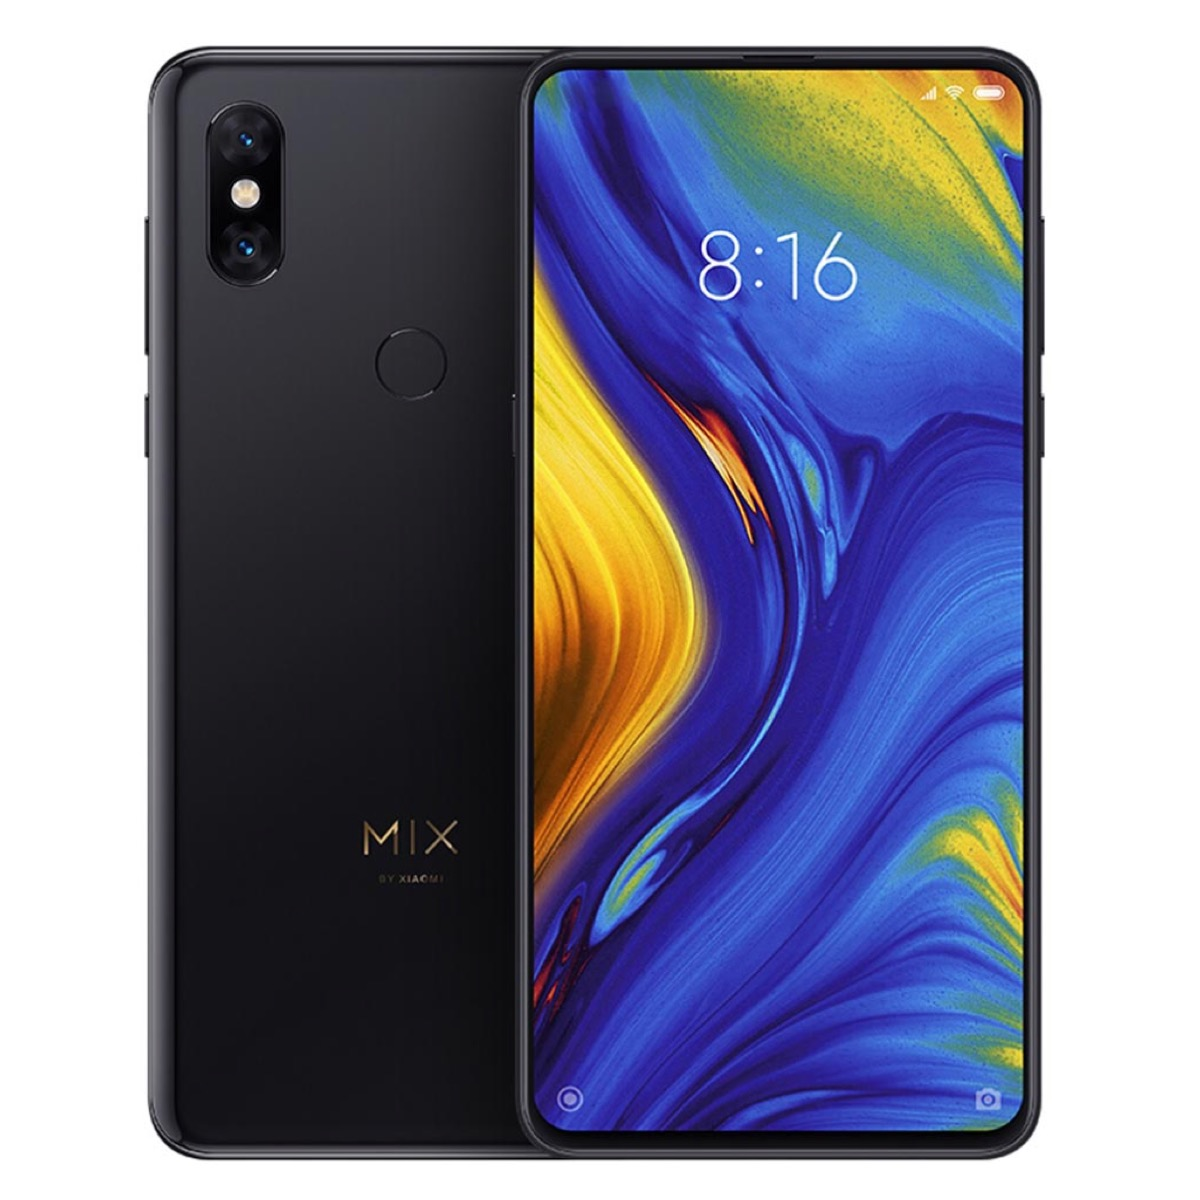 Sell Mi Mix 3 in Singapore